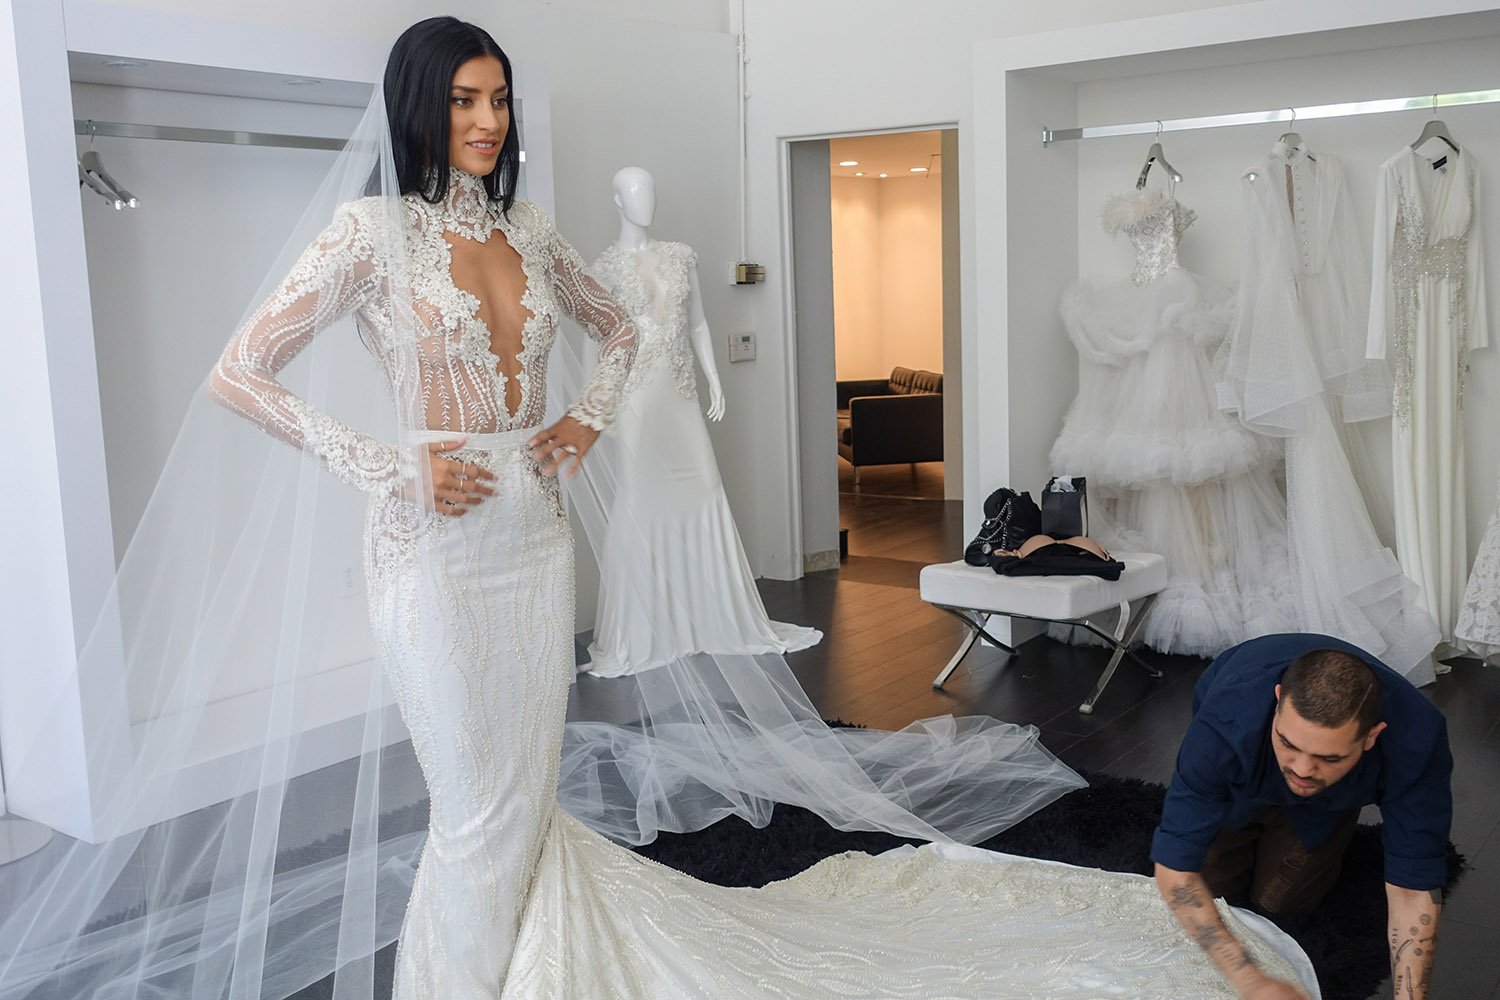 Nicole Williams in her wedding dress and veil by Michael Costello